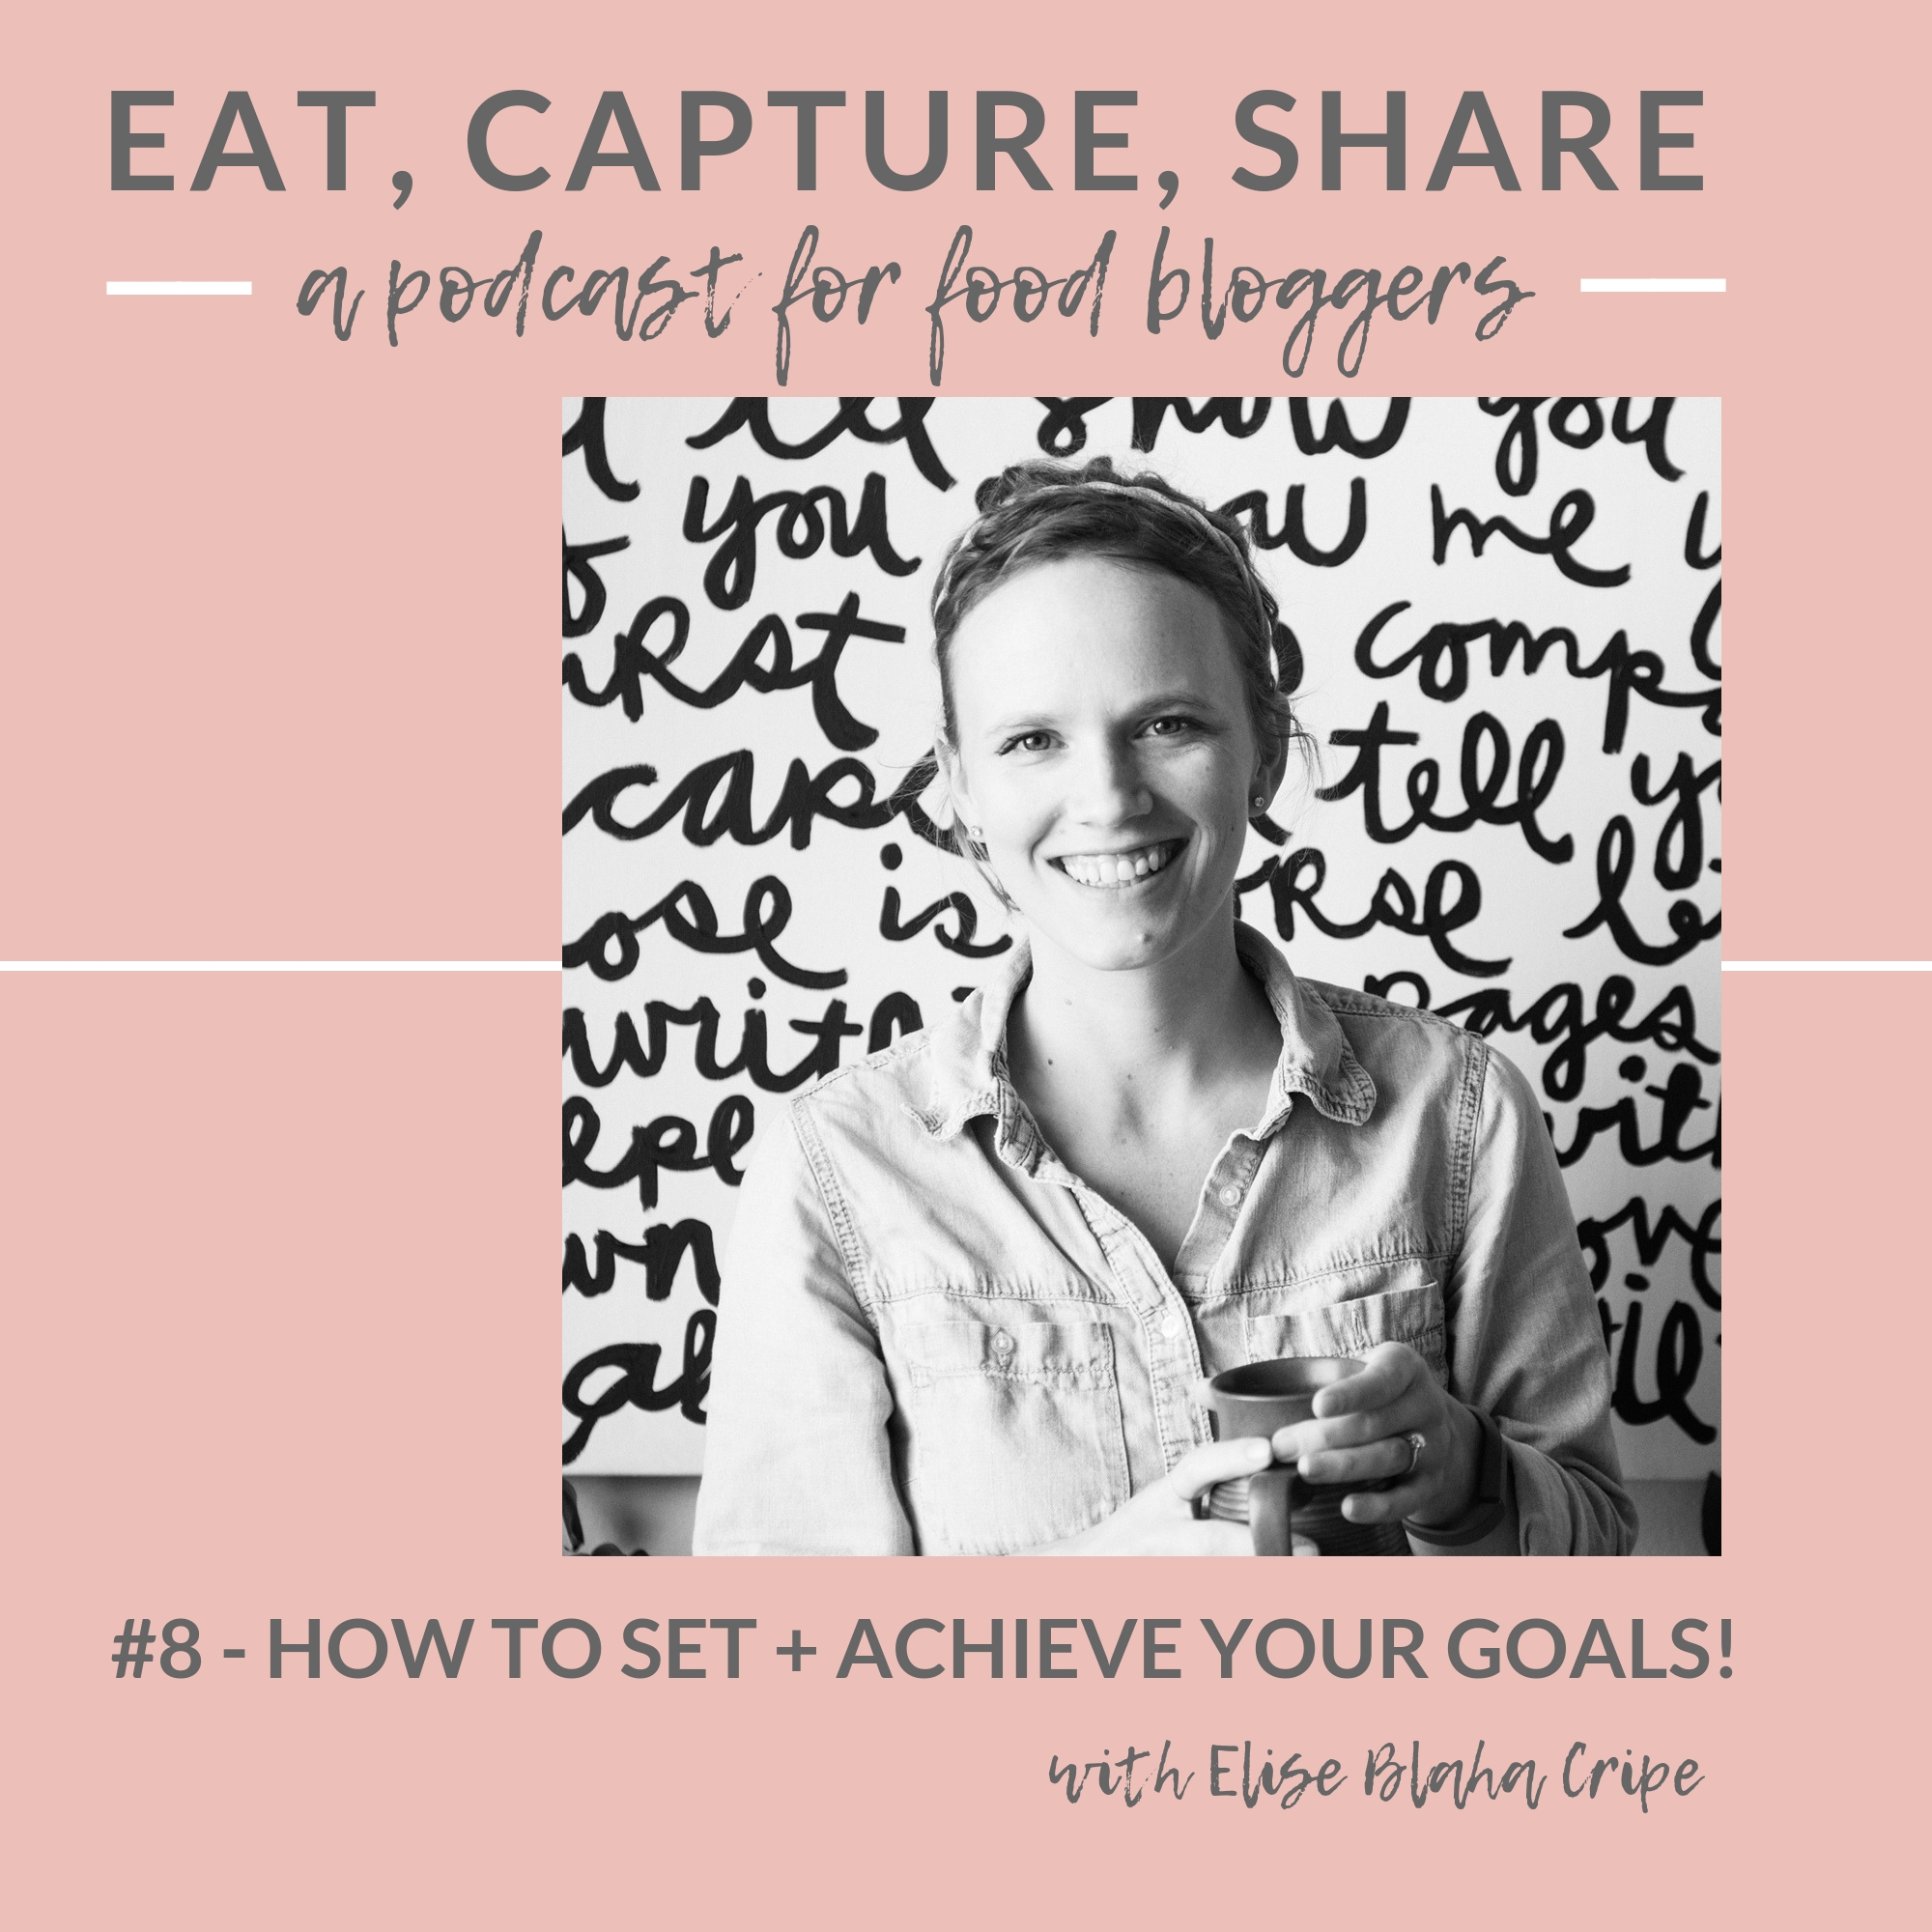 How to set and achieve your goals - Eat, Capture, Share Podcast